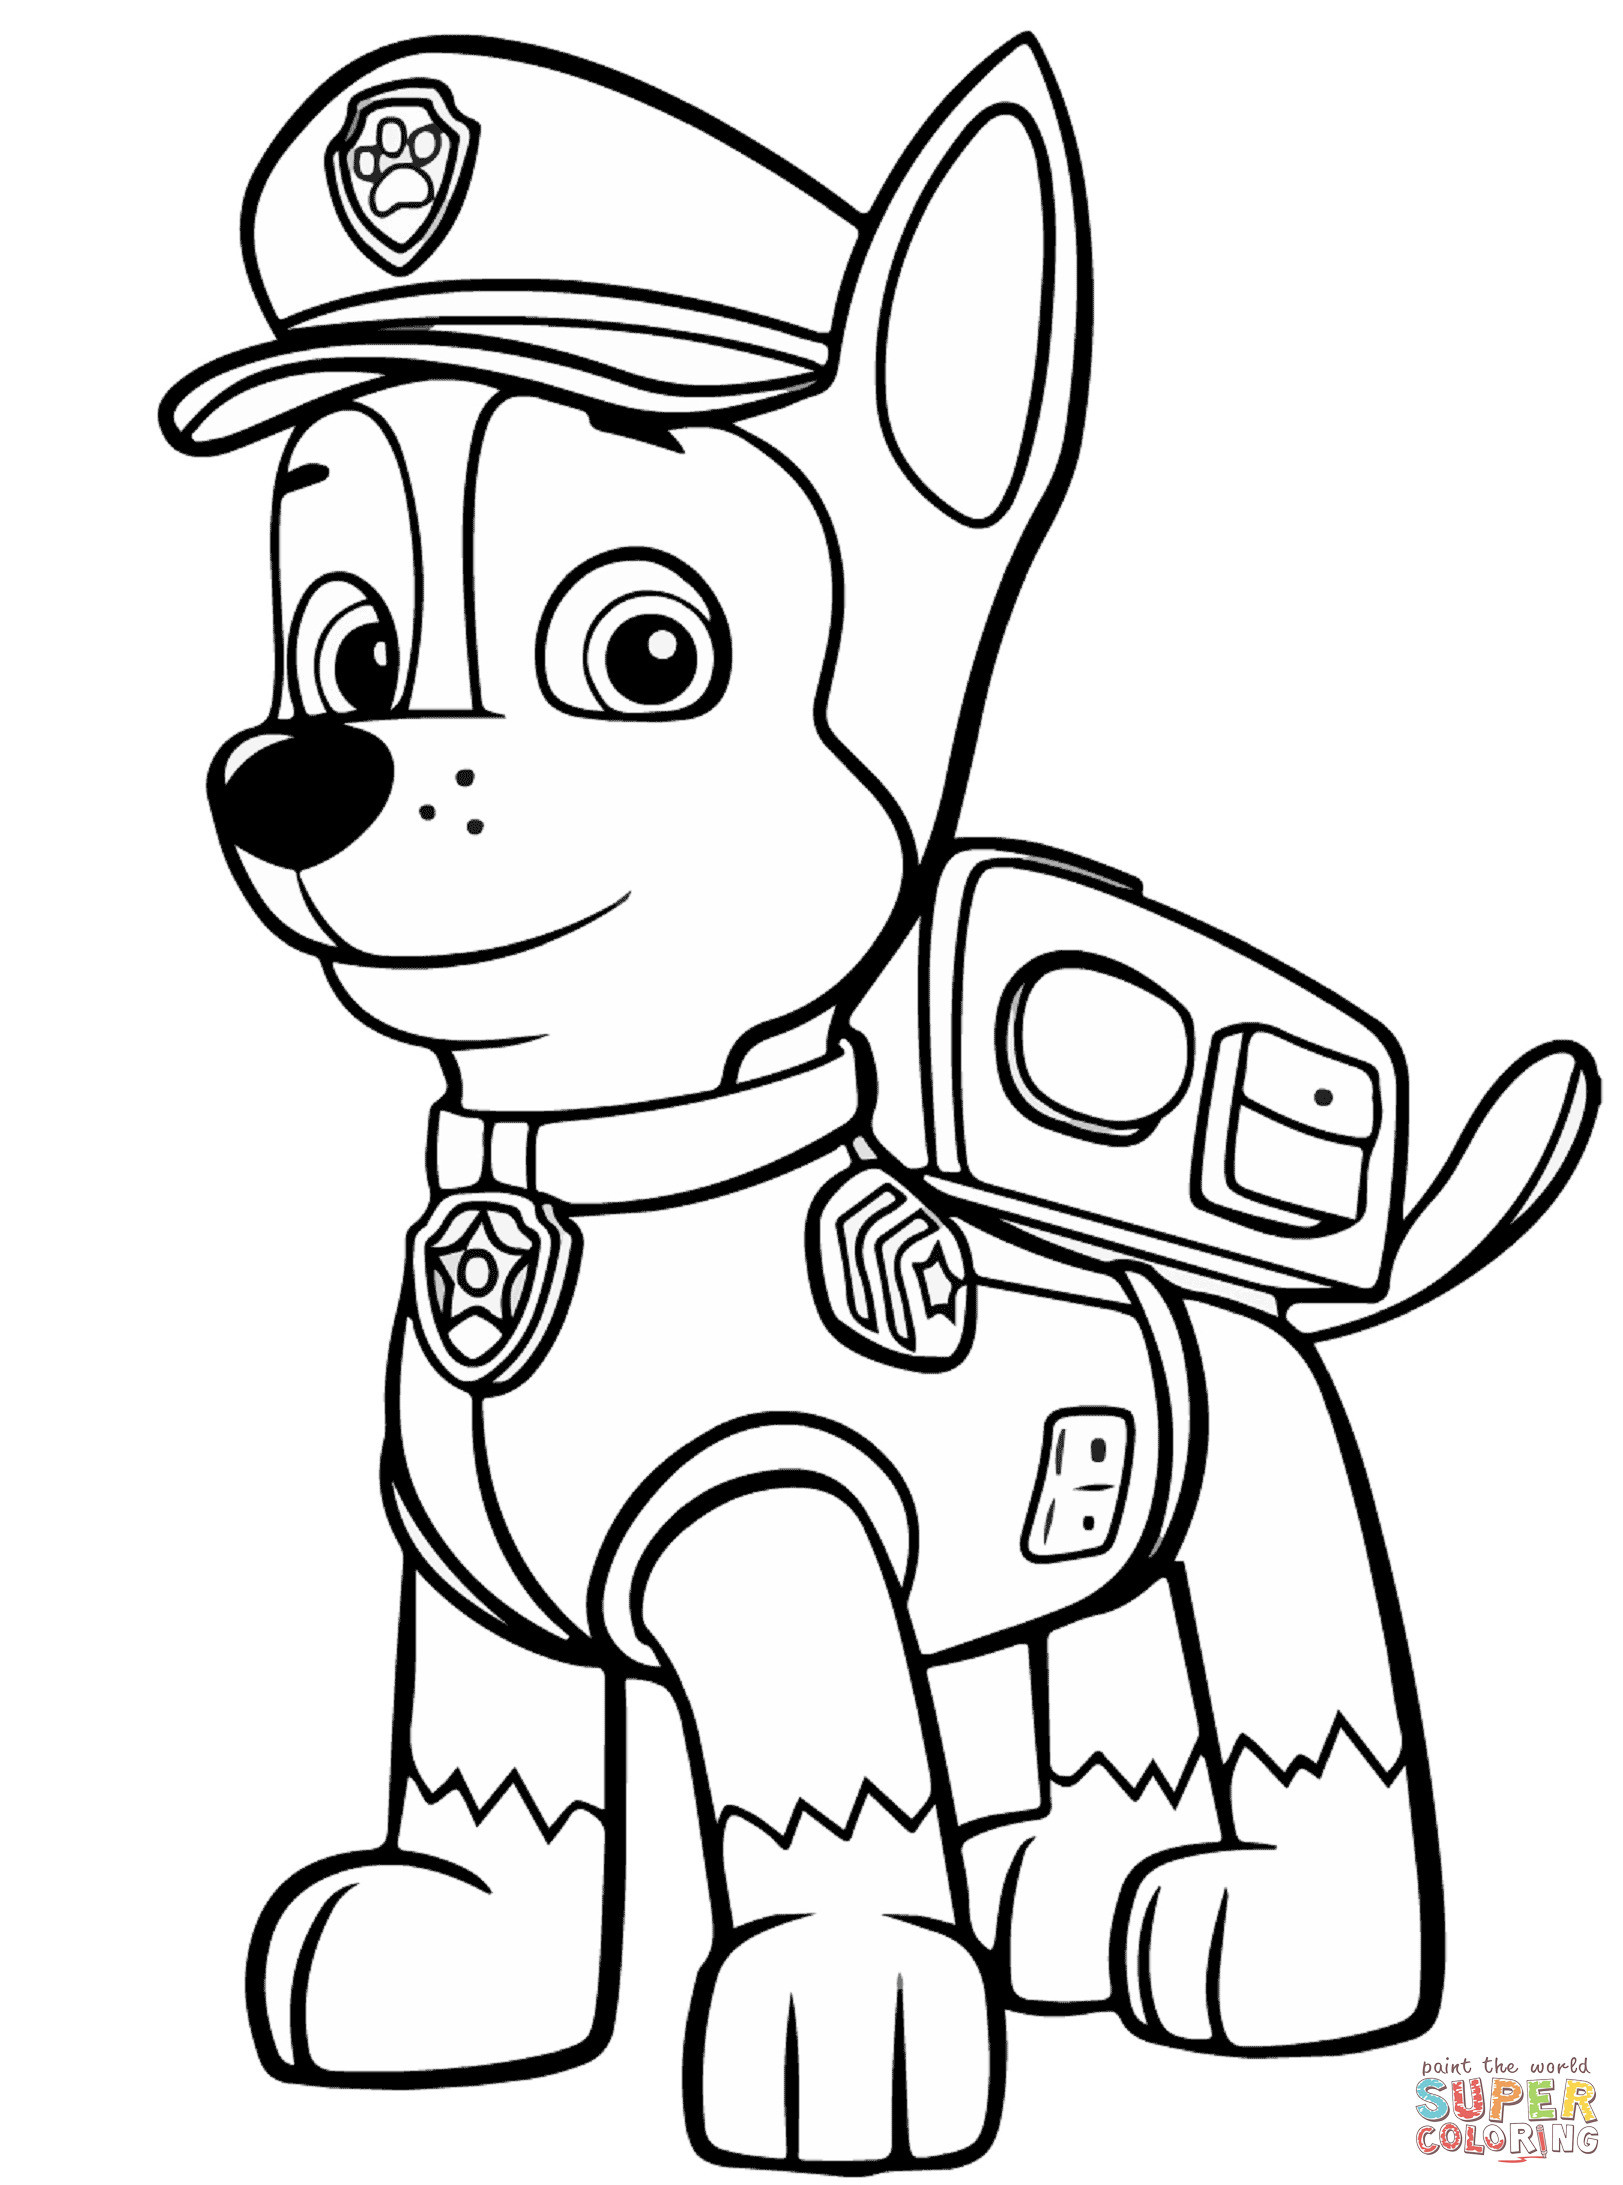 Paw Patrol Rocky Ausmalbilder Neu Lovely Paw Patrol Printable Coloring Pages Coloring Pages Galerie